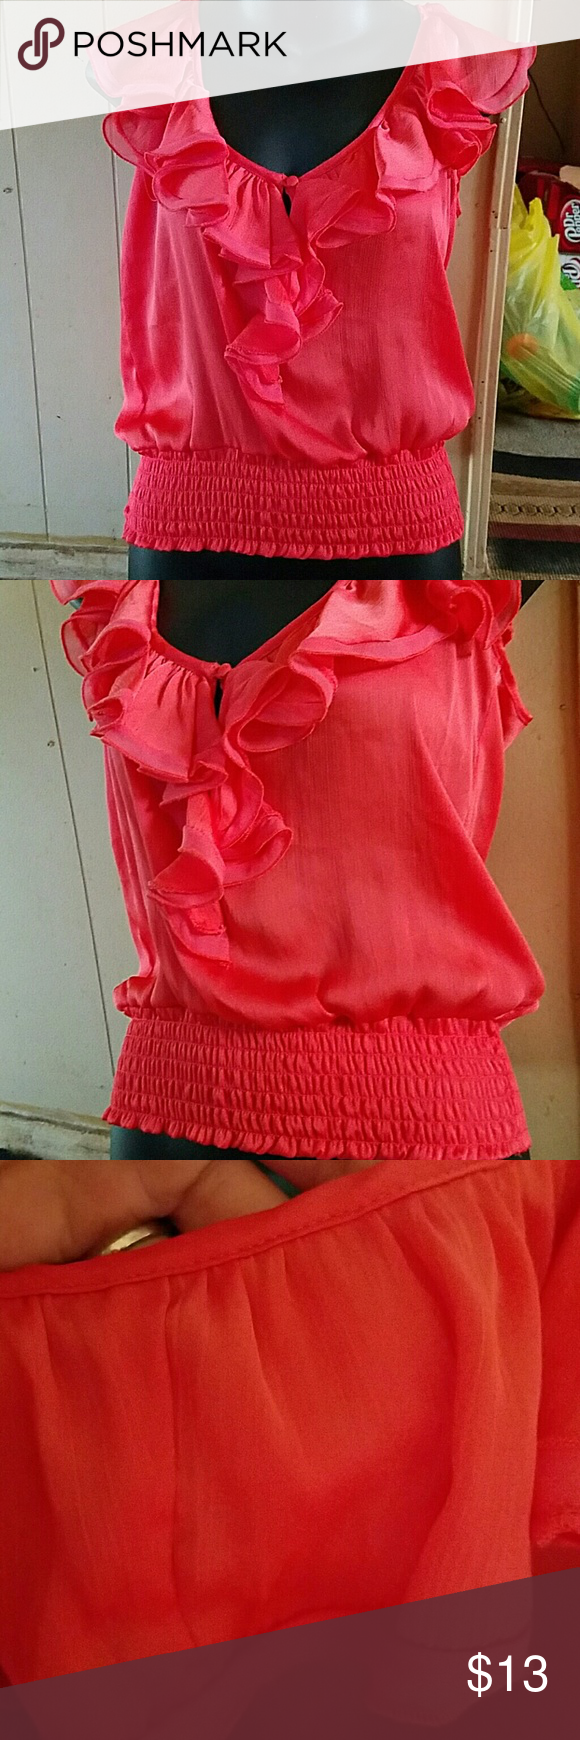 Nwt Salmon coral color top size m Nwt dress ruffle blouse tank coral salmon colored a lot softer then the pic size m contempo Tops